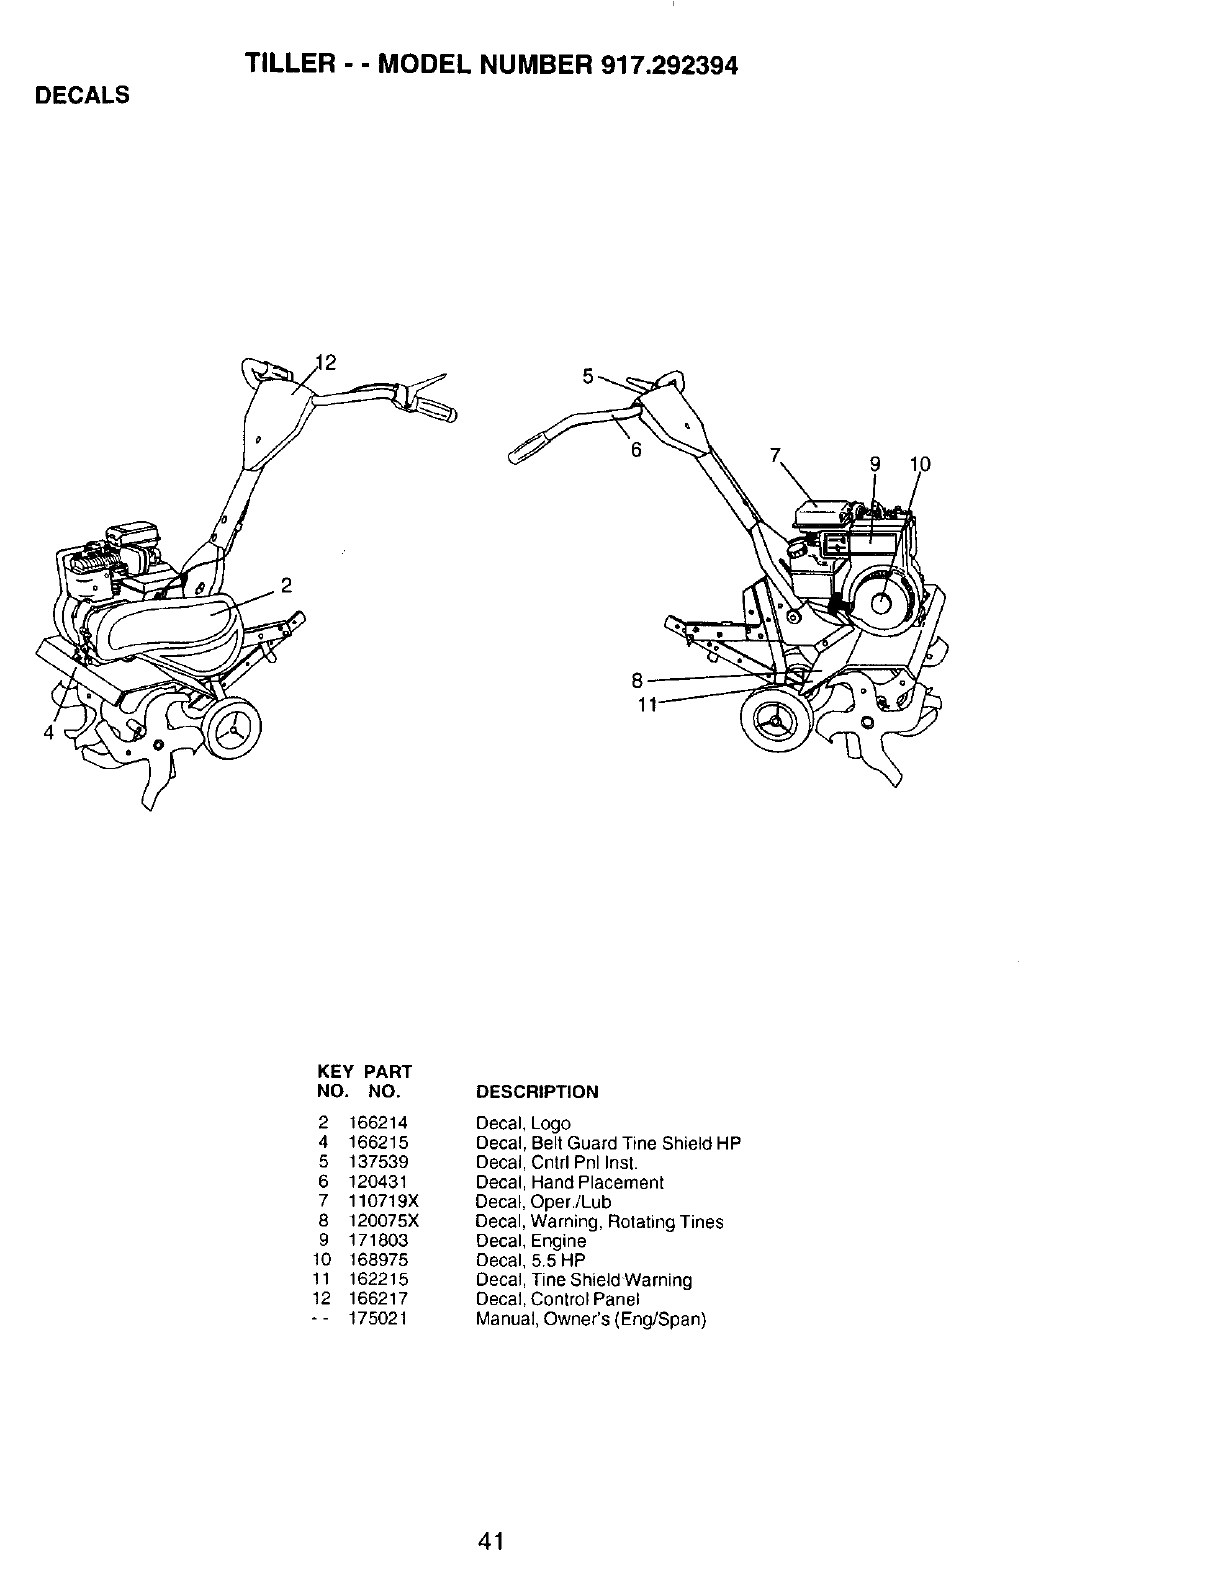 Page 24 of Craftsman Tiller 917.292394 User Guide